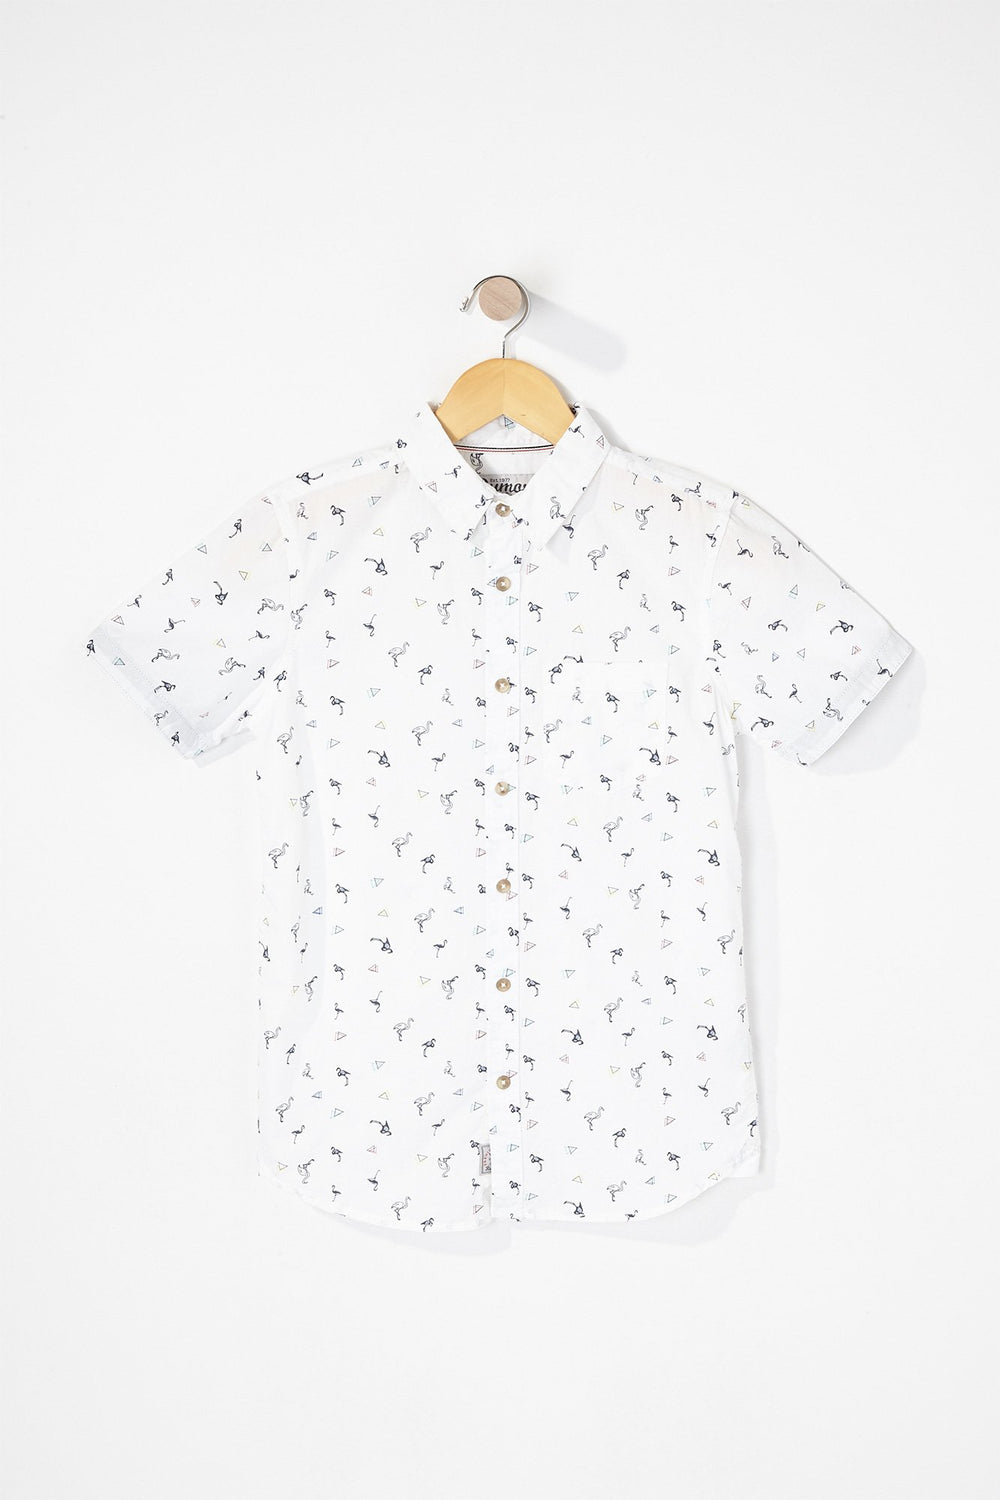 West49 Boys Graphic Button-Up Shirt White